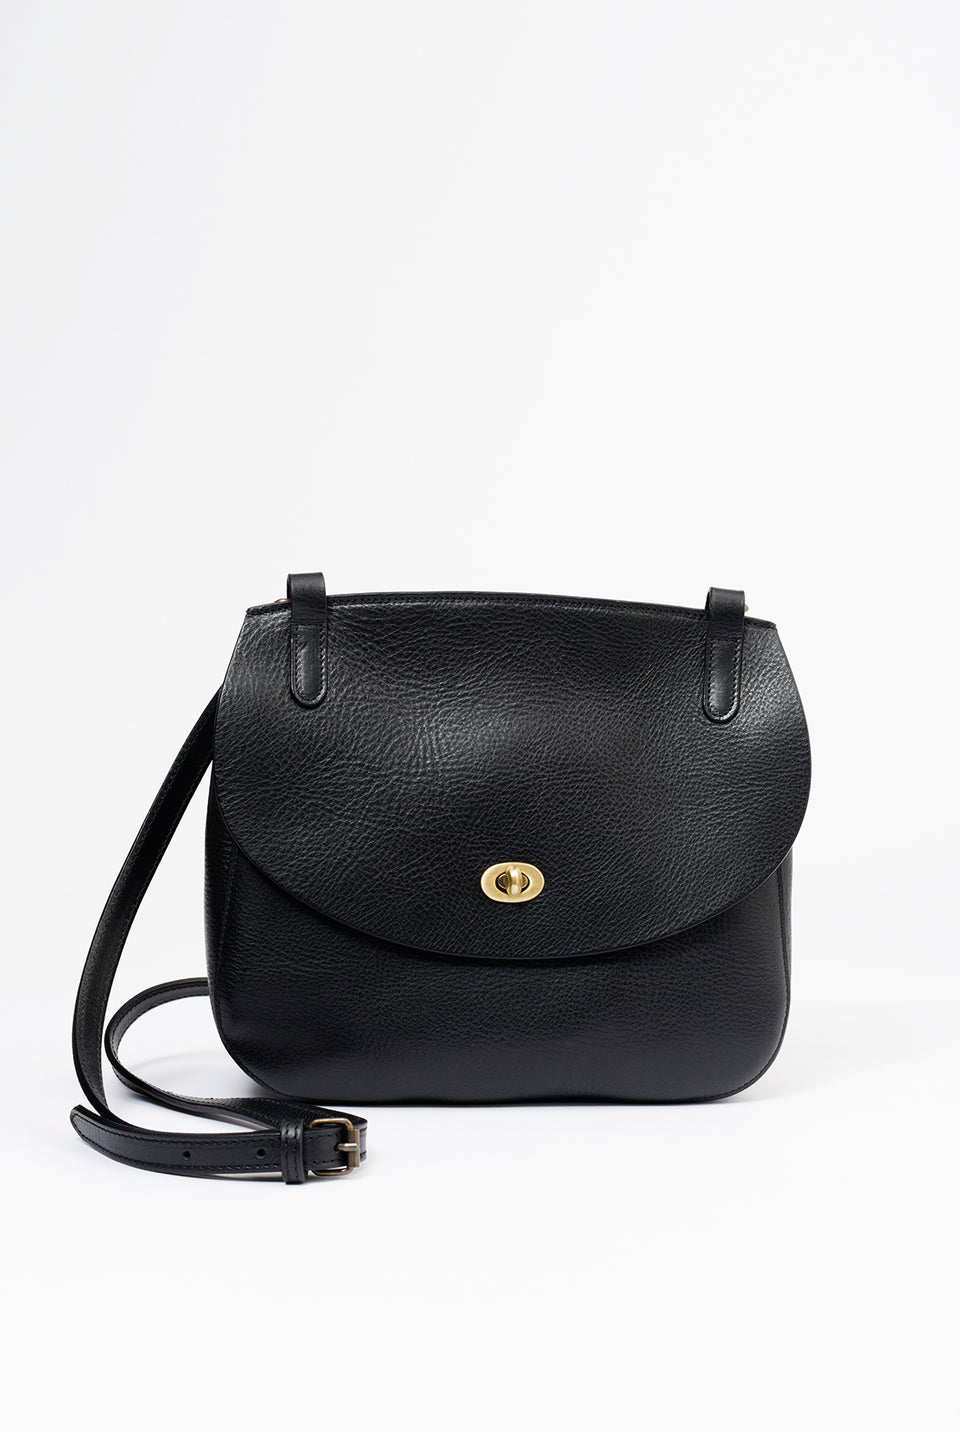 Purse Bag Black